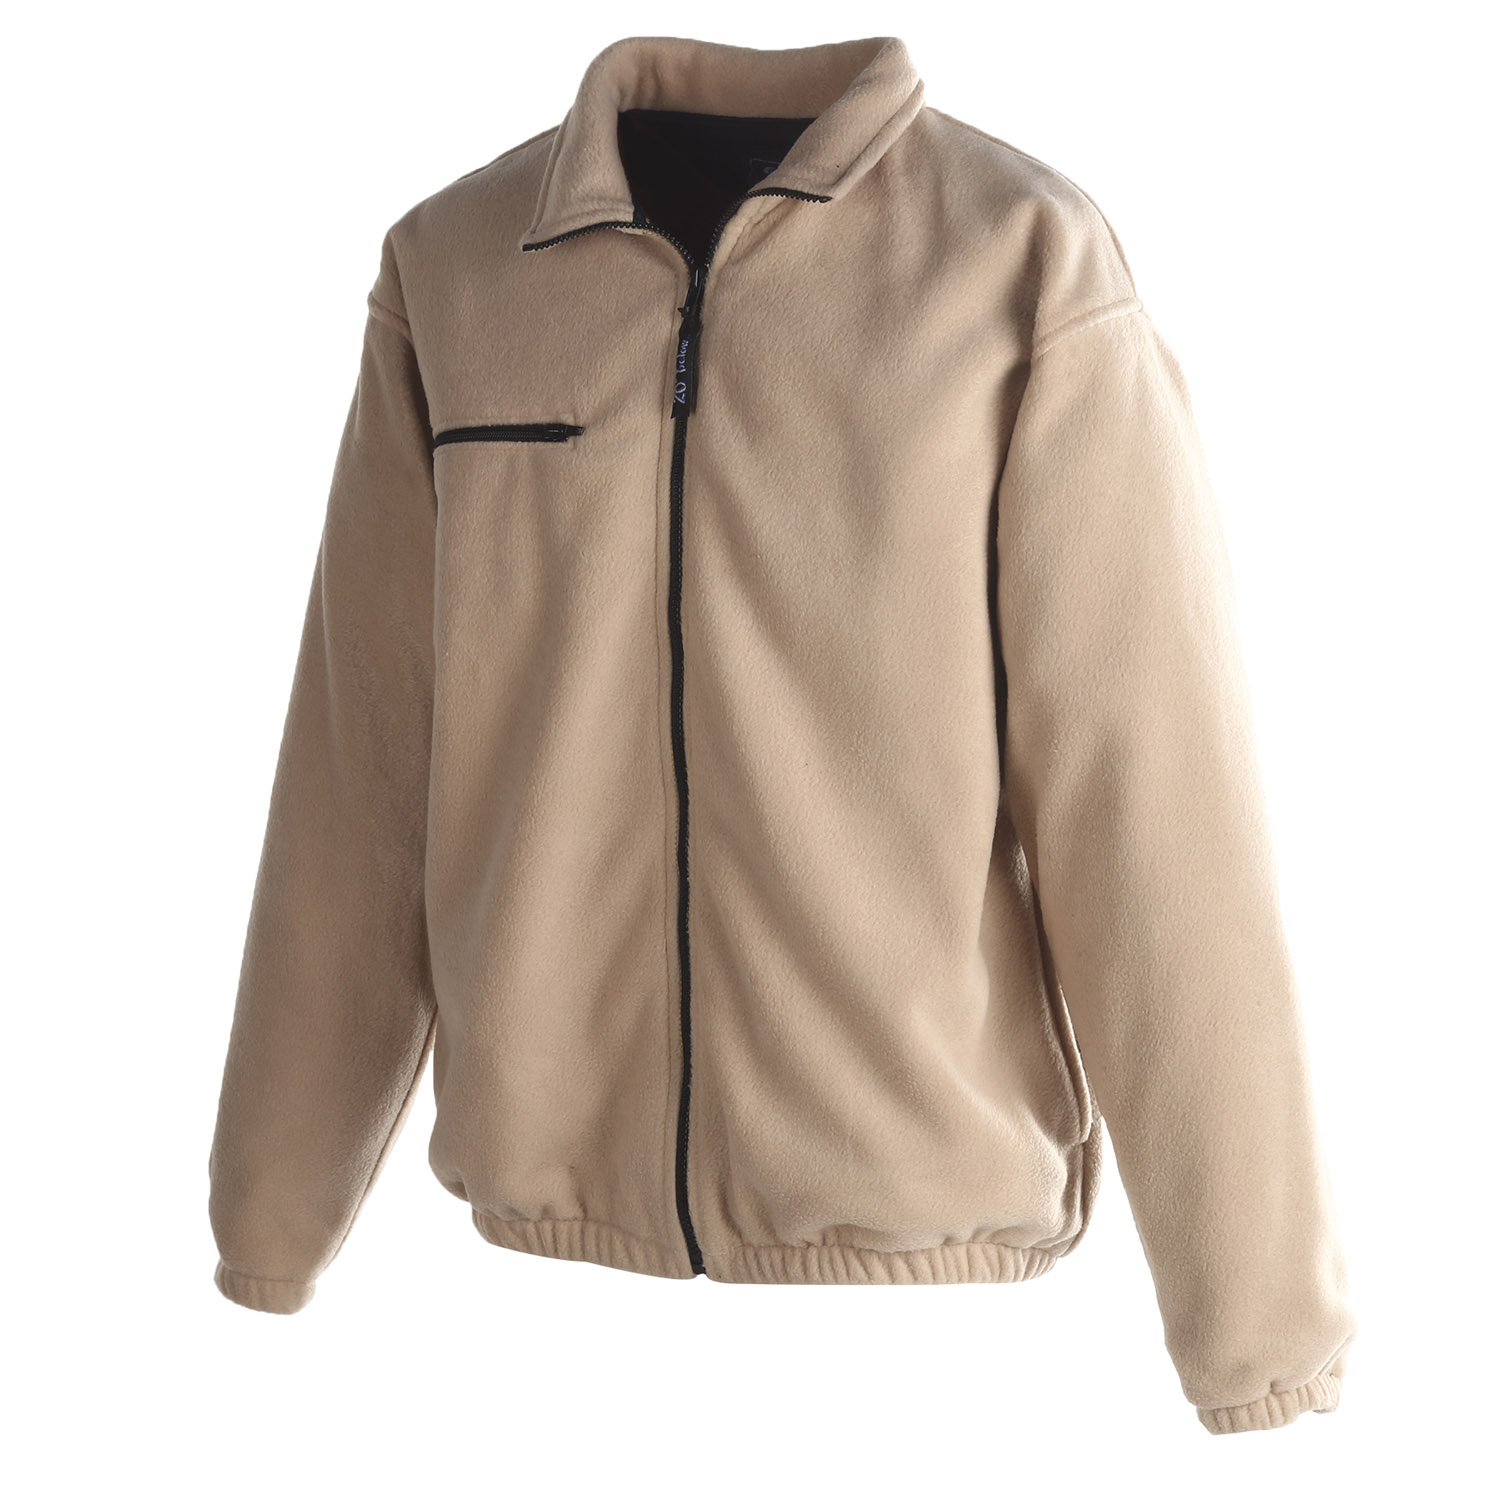 Tan Fleece Jacket | Outdoor Jacket